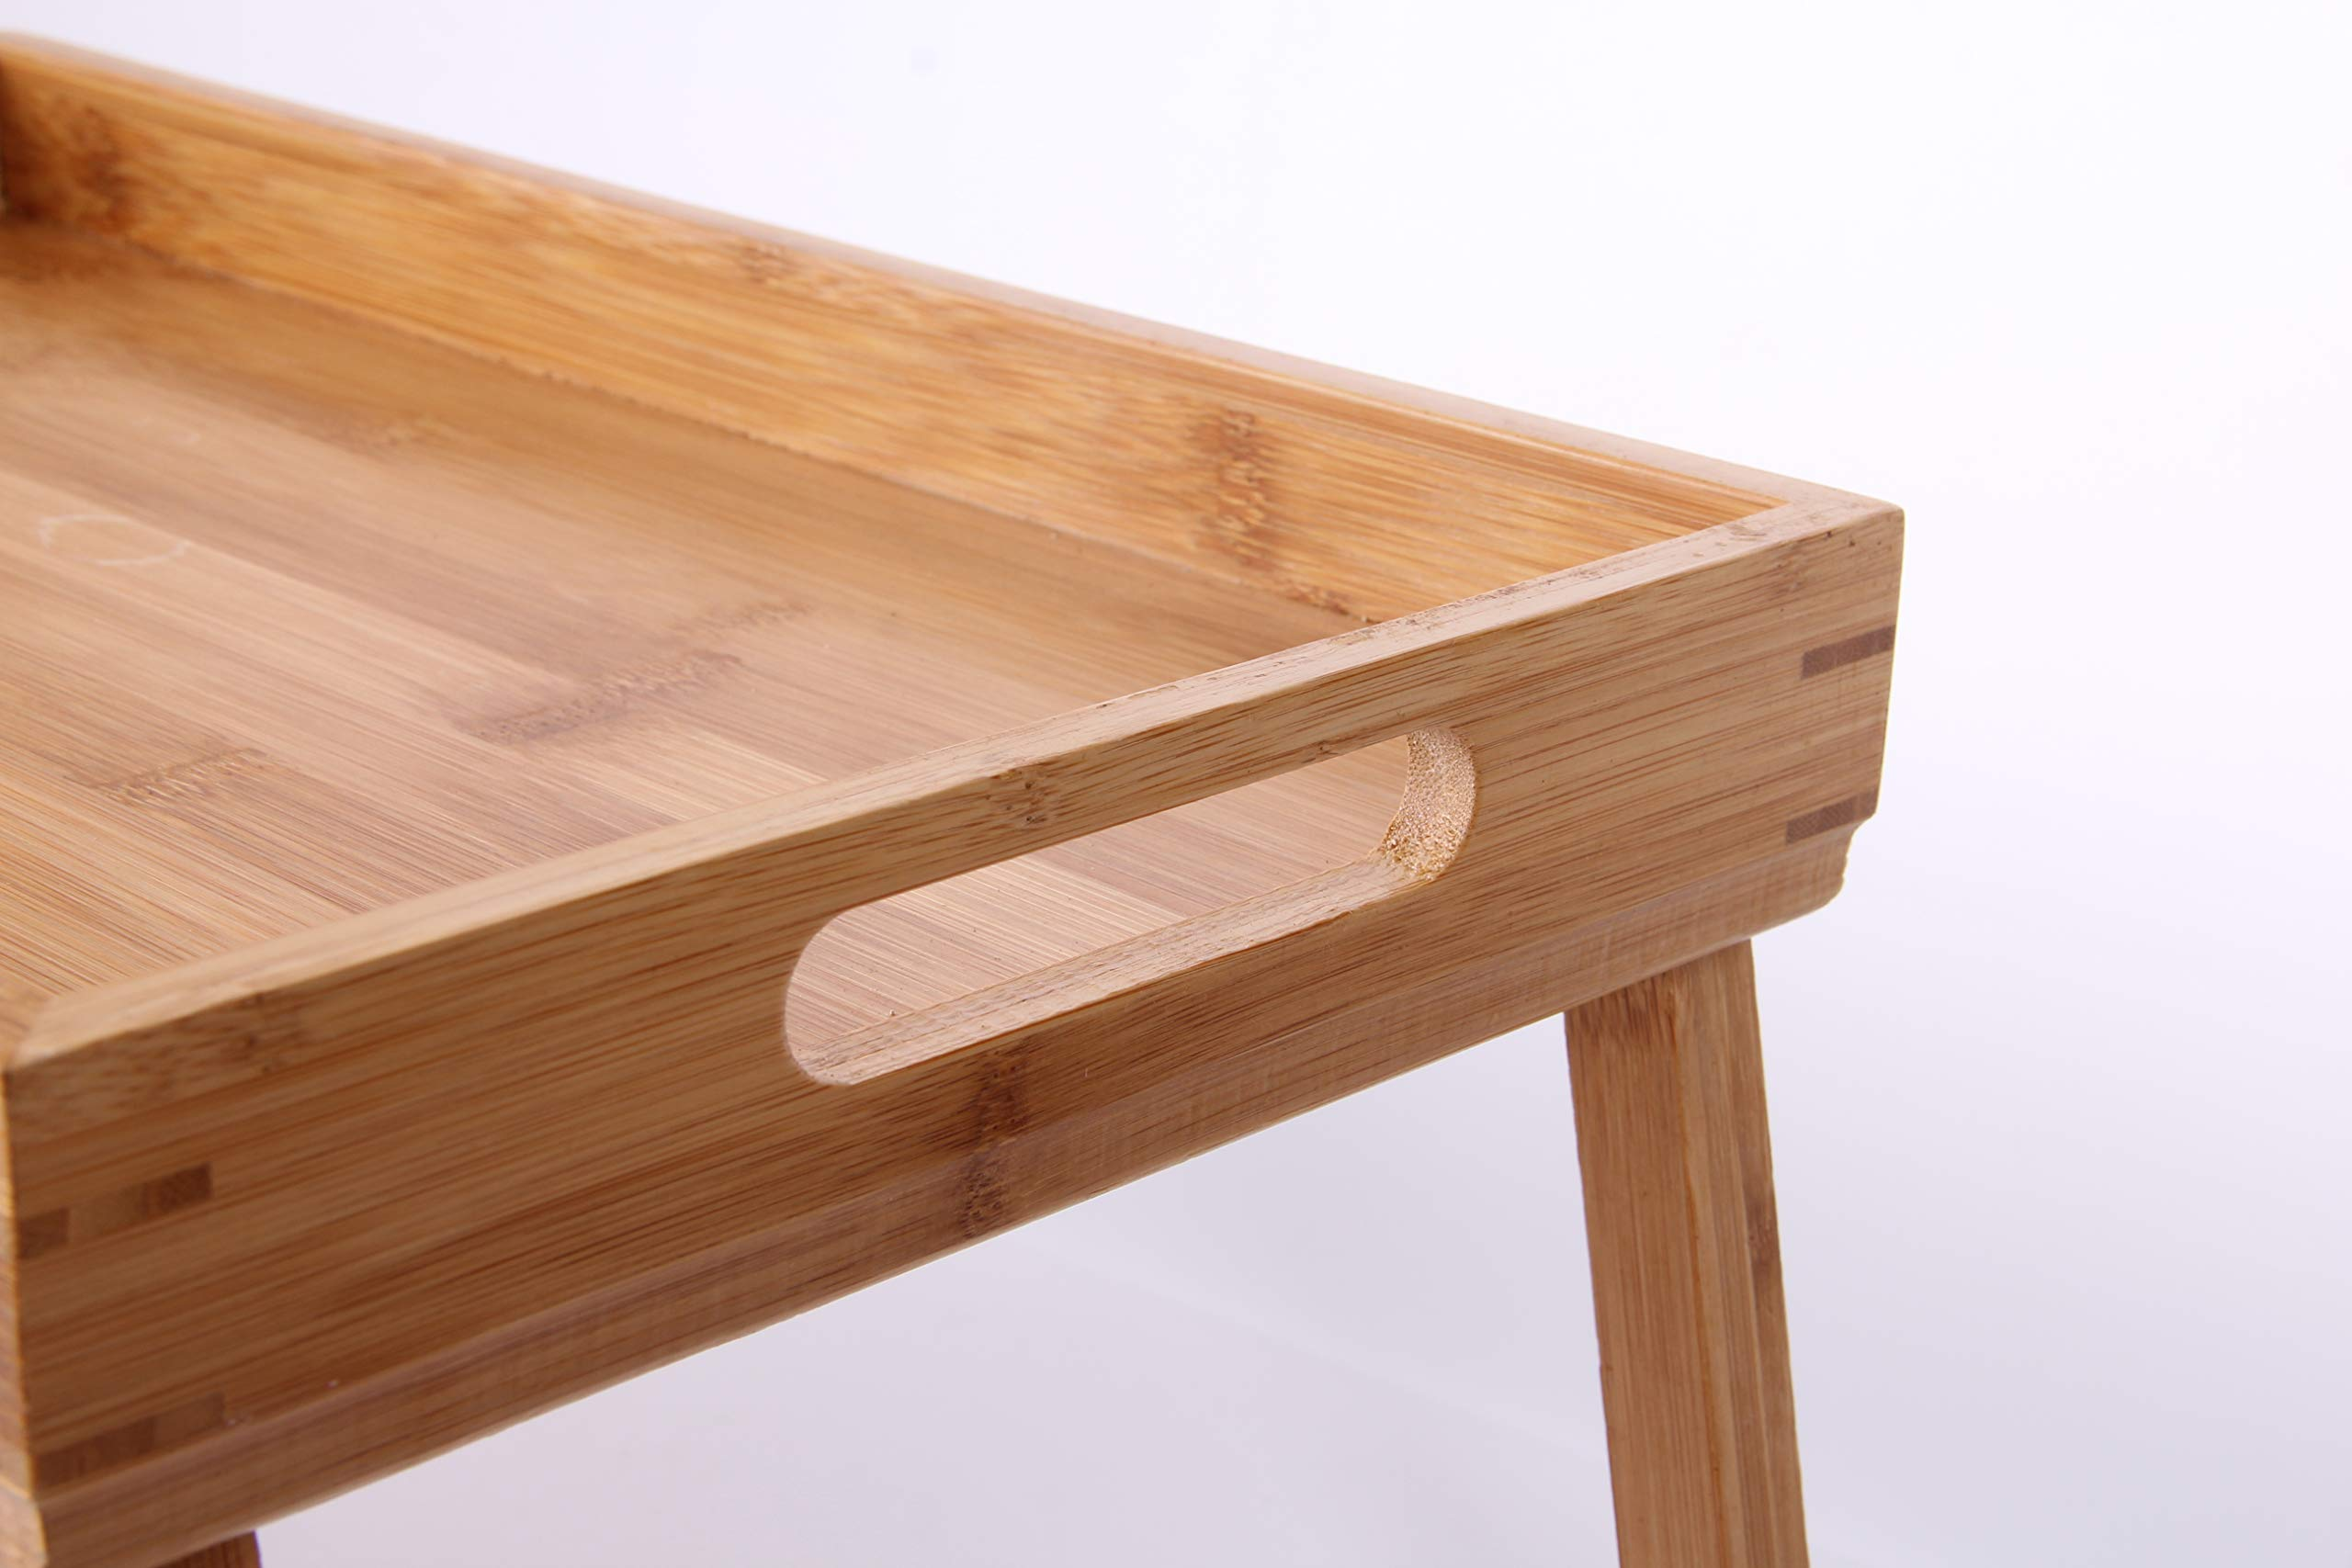 Bamboo Foldable Breakfast Table, Laptop computer tray, Bed Table, Serving Tray